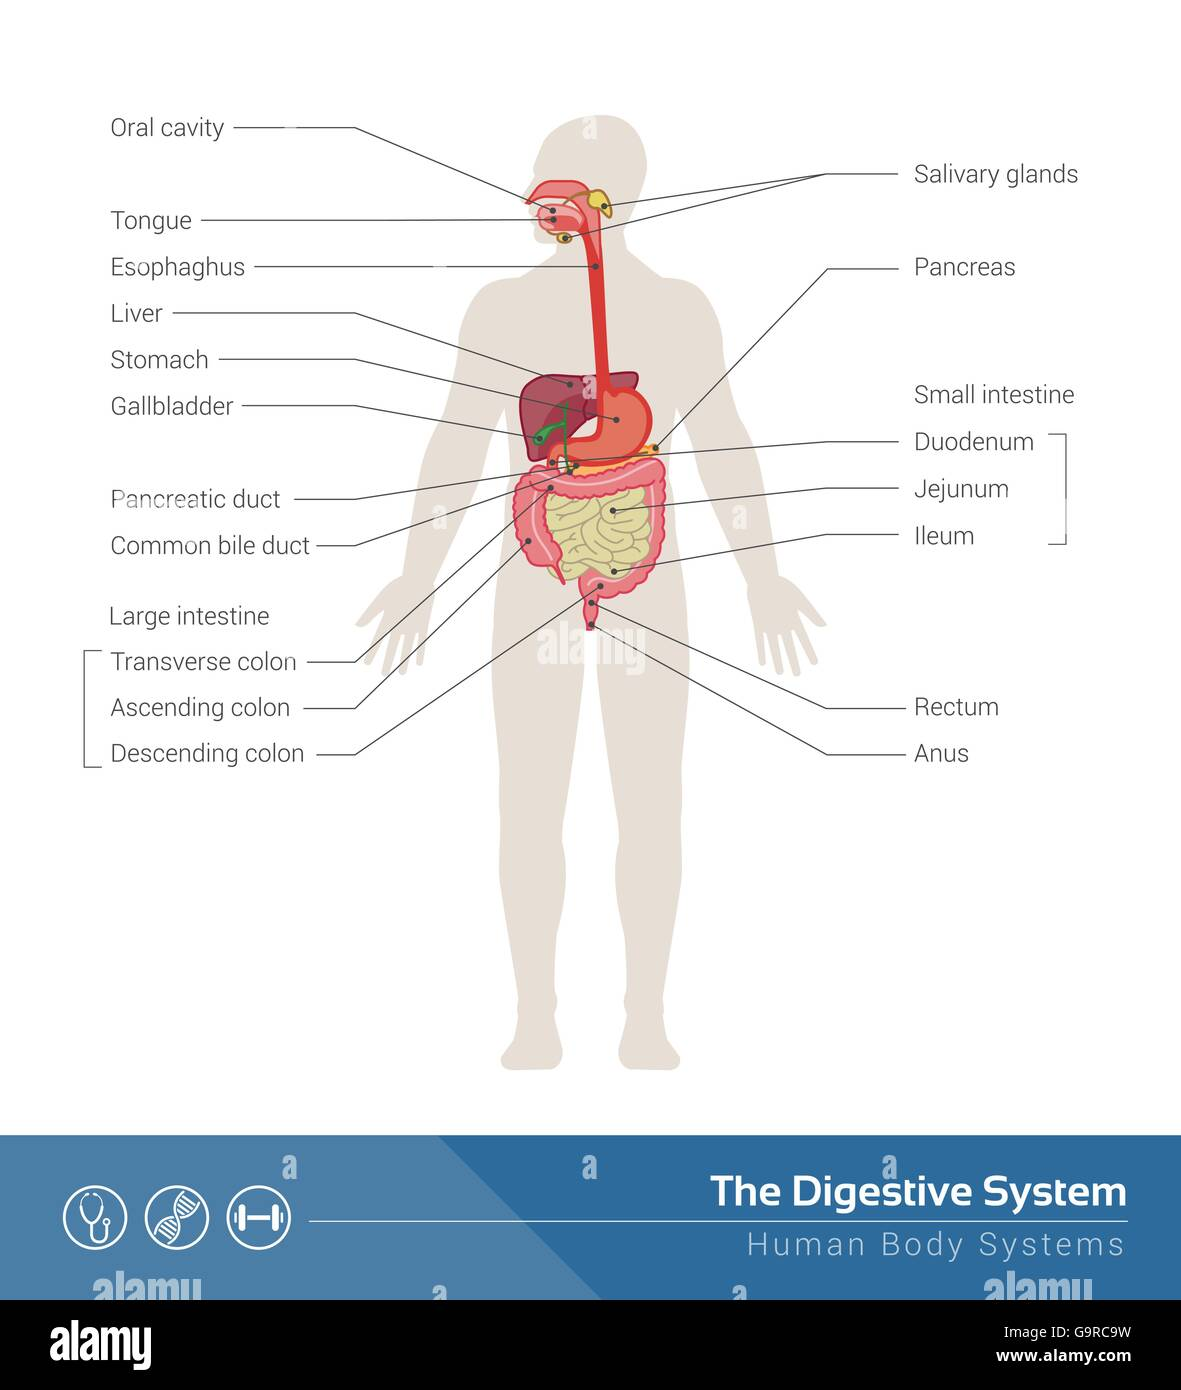 The human digestive system medical illustration with internal organs the human digestive system medical illustration with internal organs ccuart Gallery